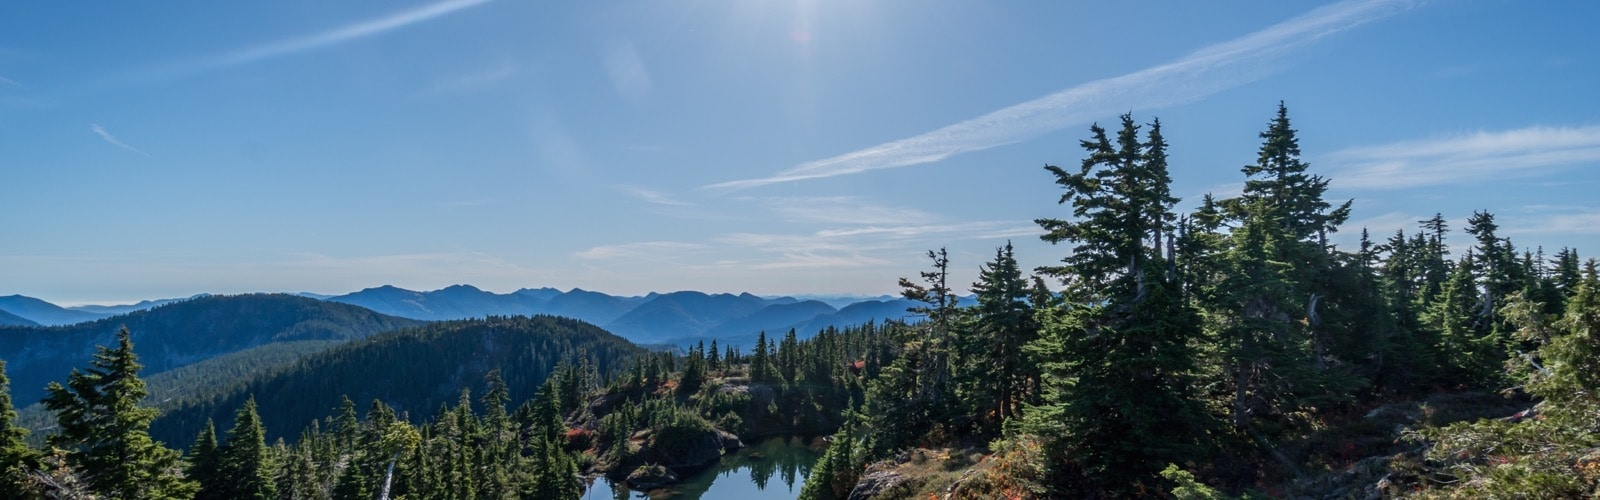 Minna Ridge : A Vancouver Island Day Hike